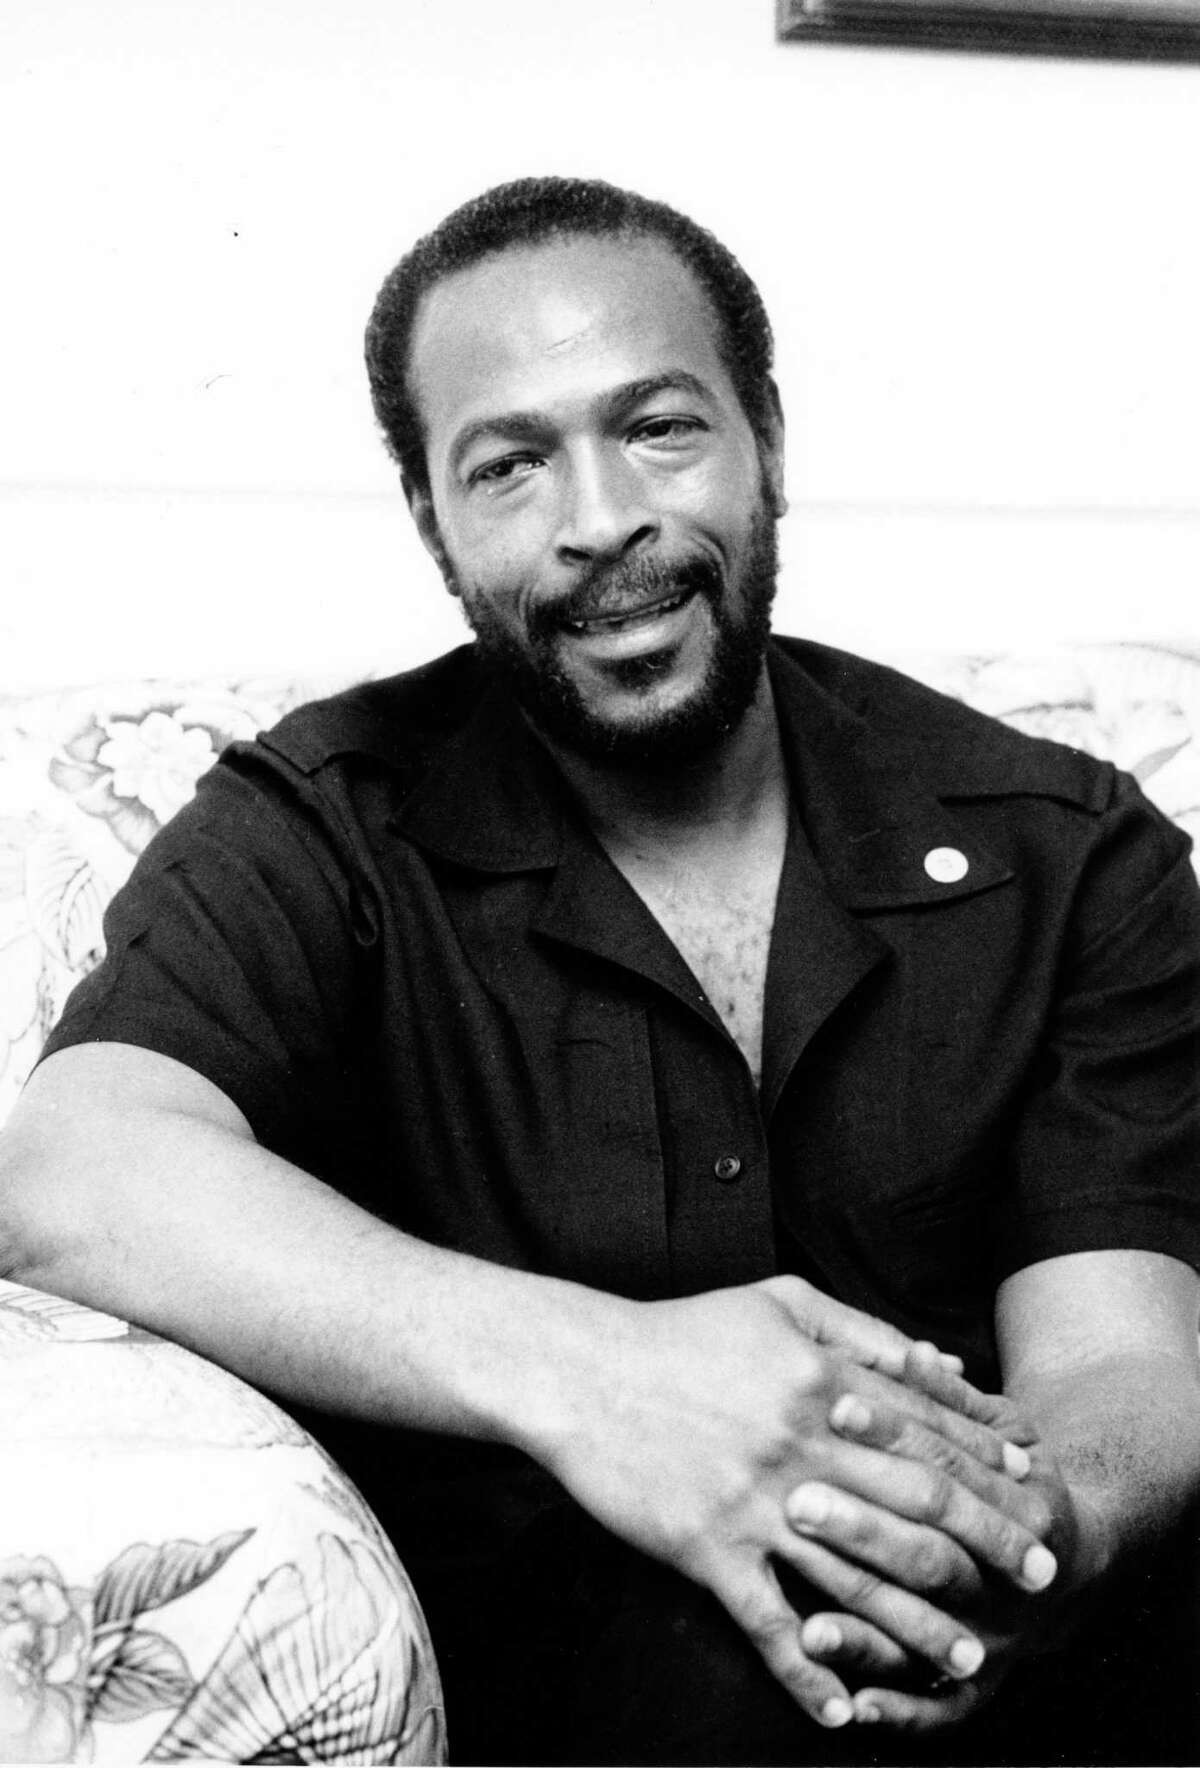 This is an undated photo of soul singer Marvin Gaye in New York City.